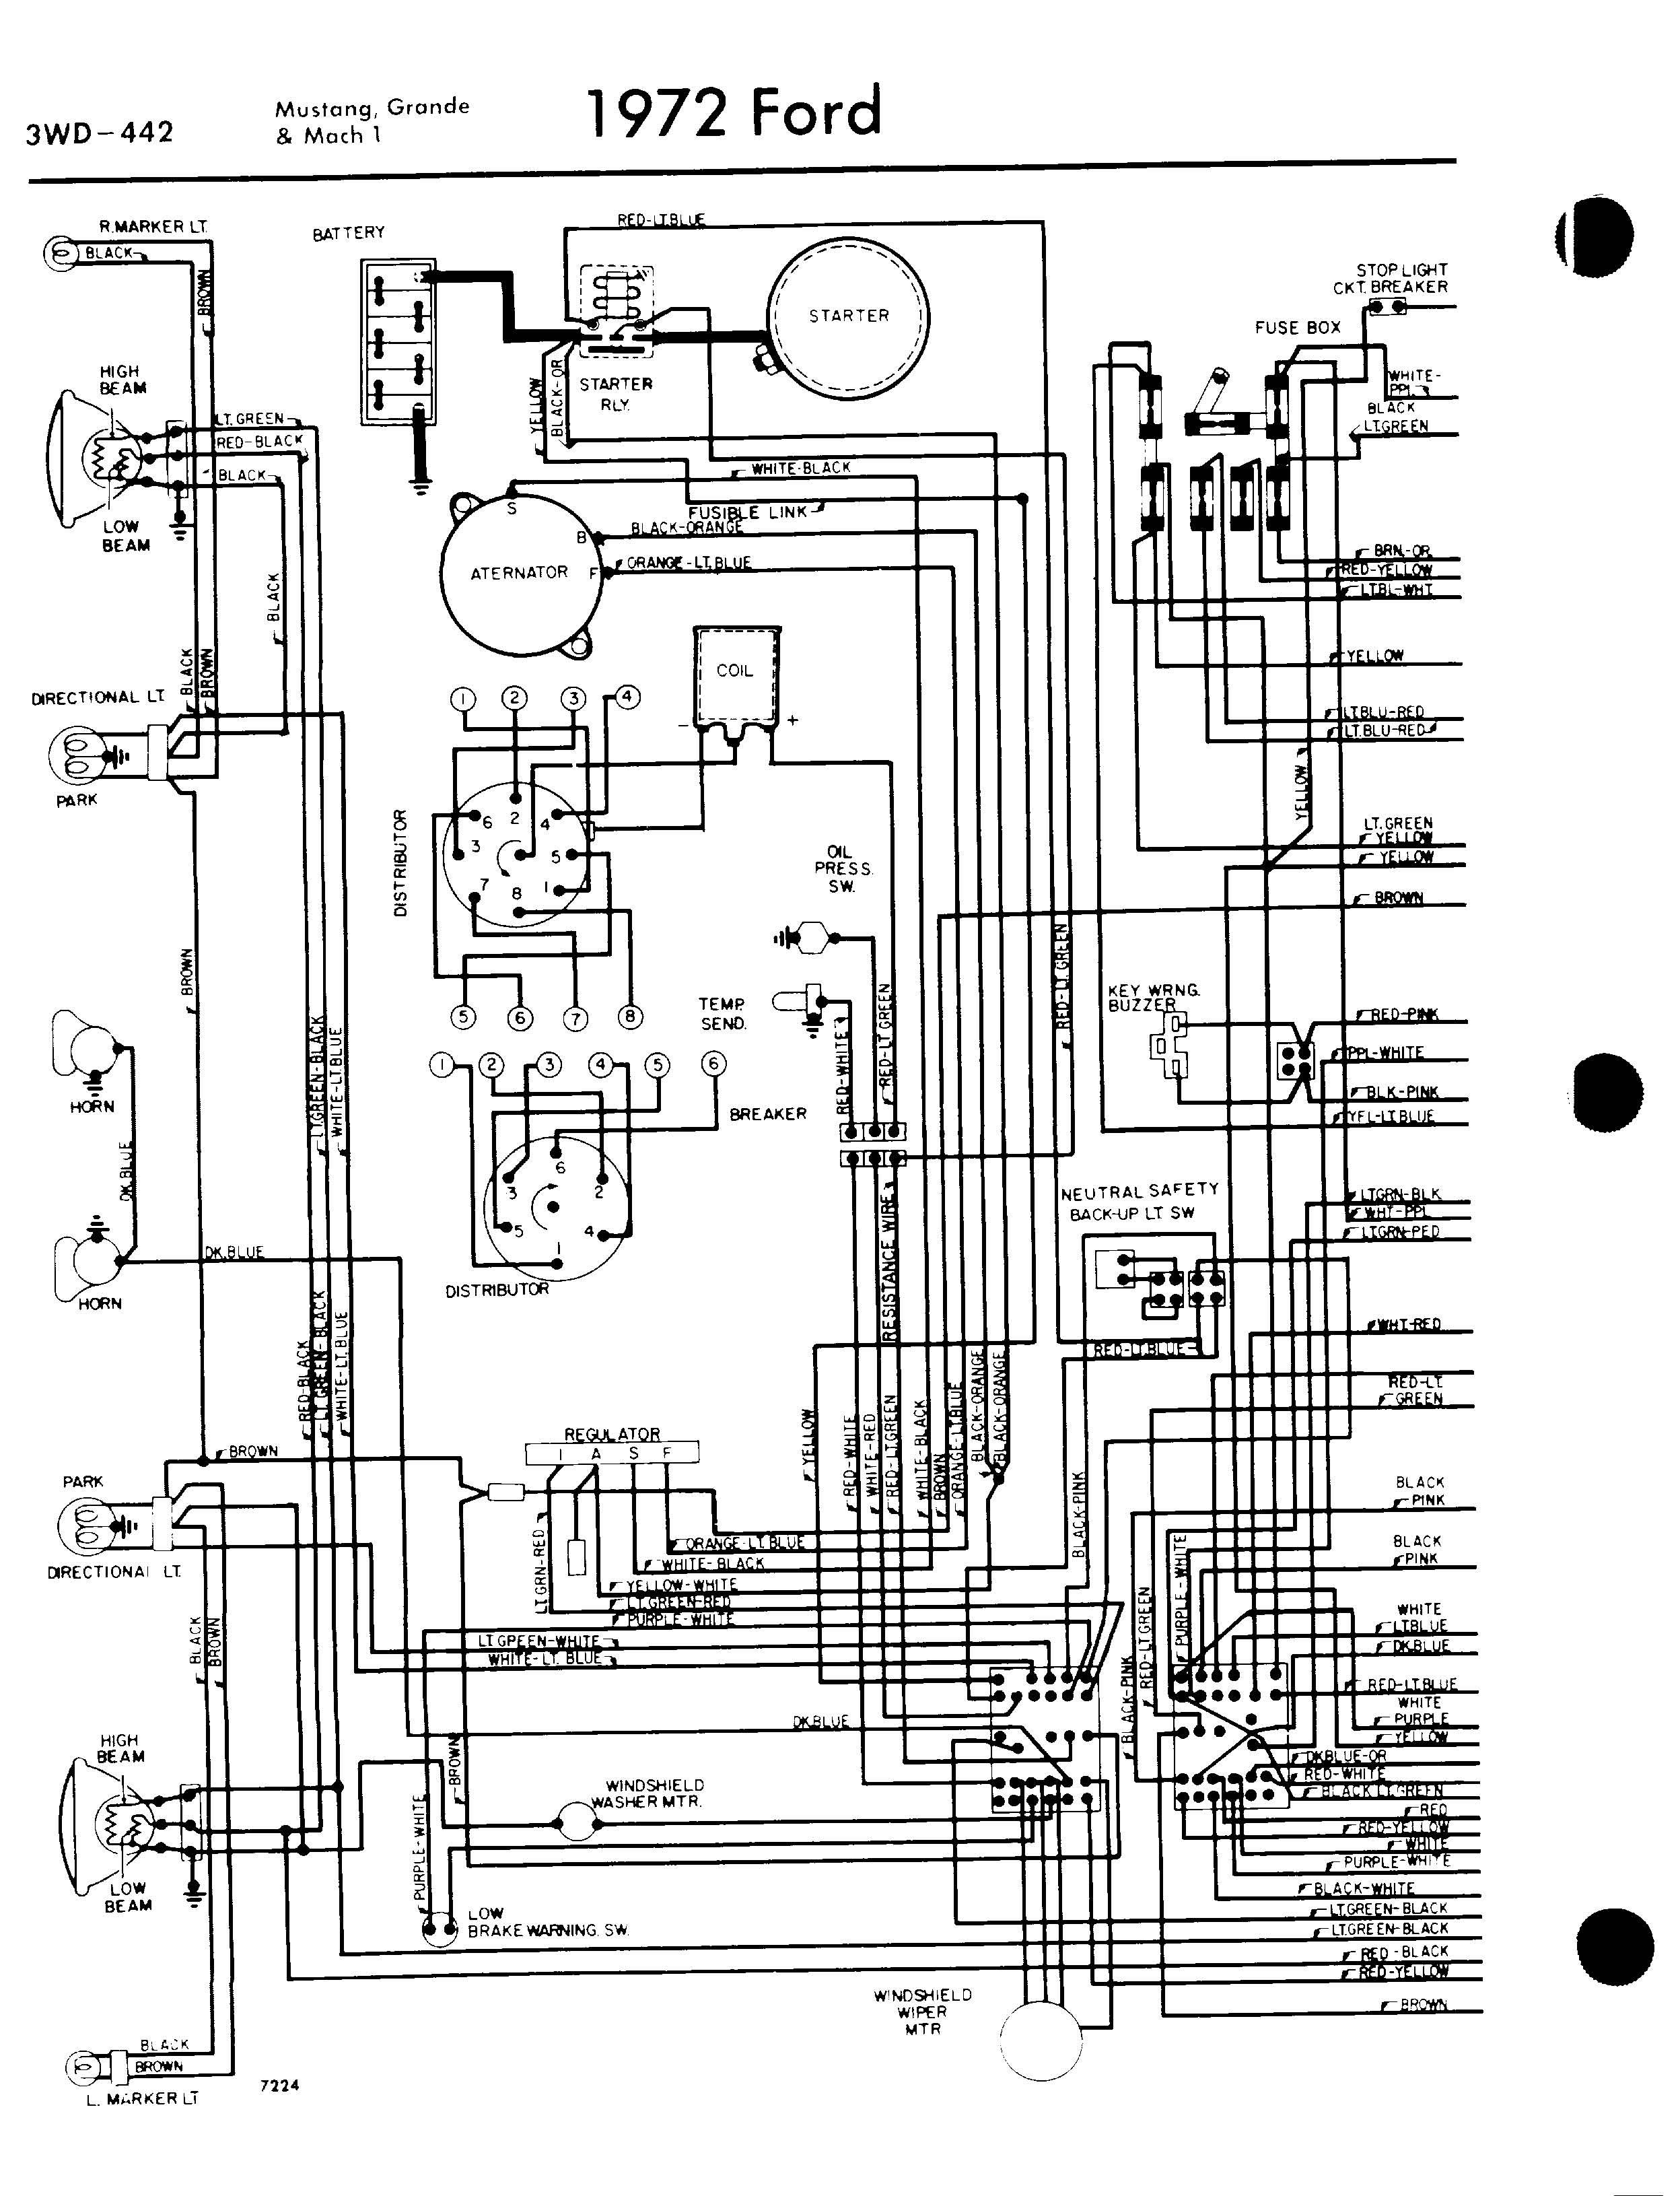 ford 302 wiring diagram wiring diagram for you 1973 mustang wiring diagram 1974 ford 302 engine [ 2496 x 3262 Pixel ]